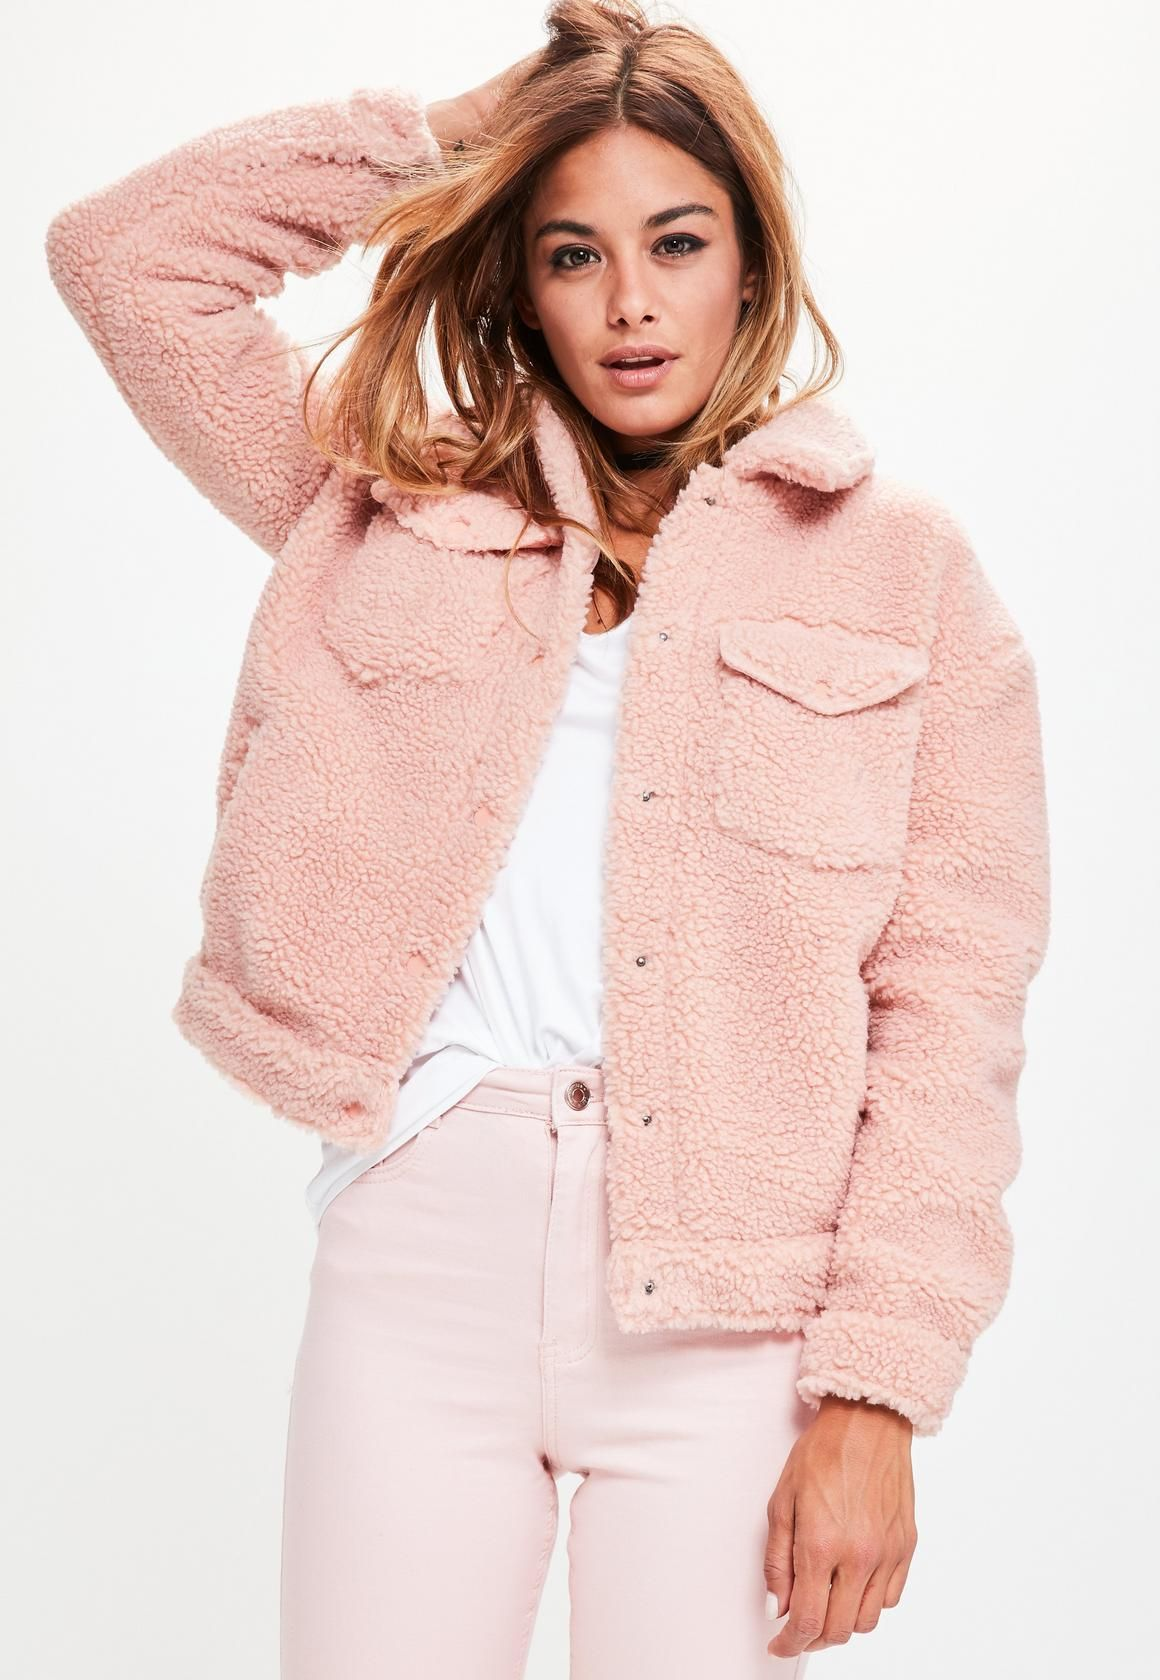 Missguided Pink Faux Shearling Trucker Jacket - $68 | Hip Teen ...